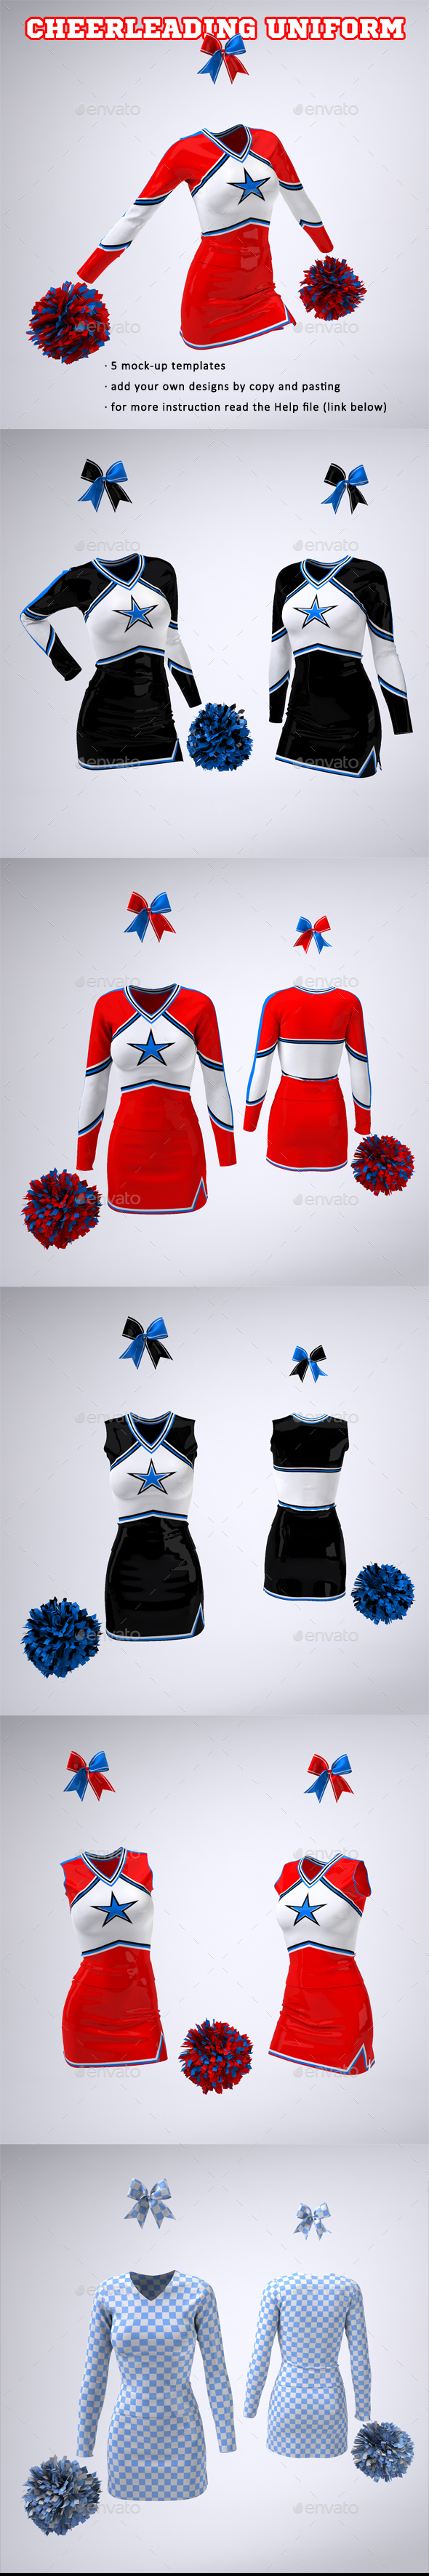 Cheerleading Uniform Mock-Up - Apparel Product Mock-Ups